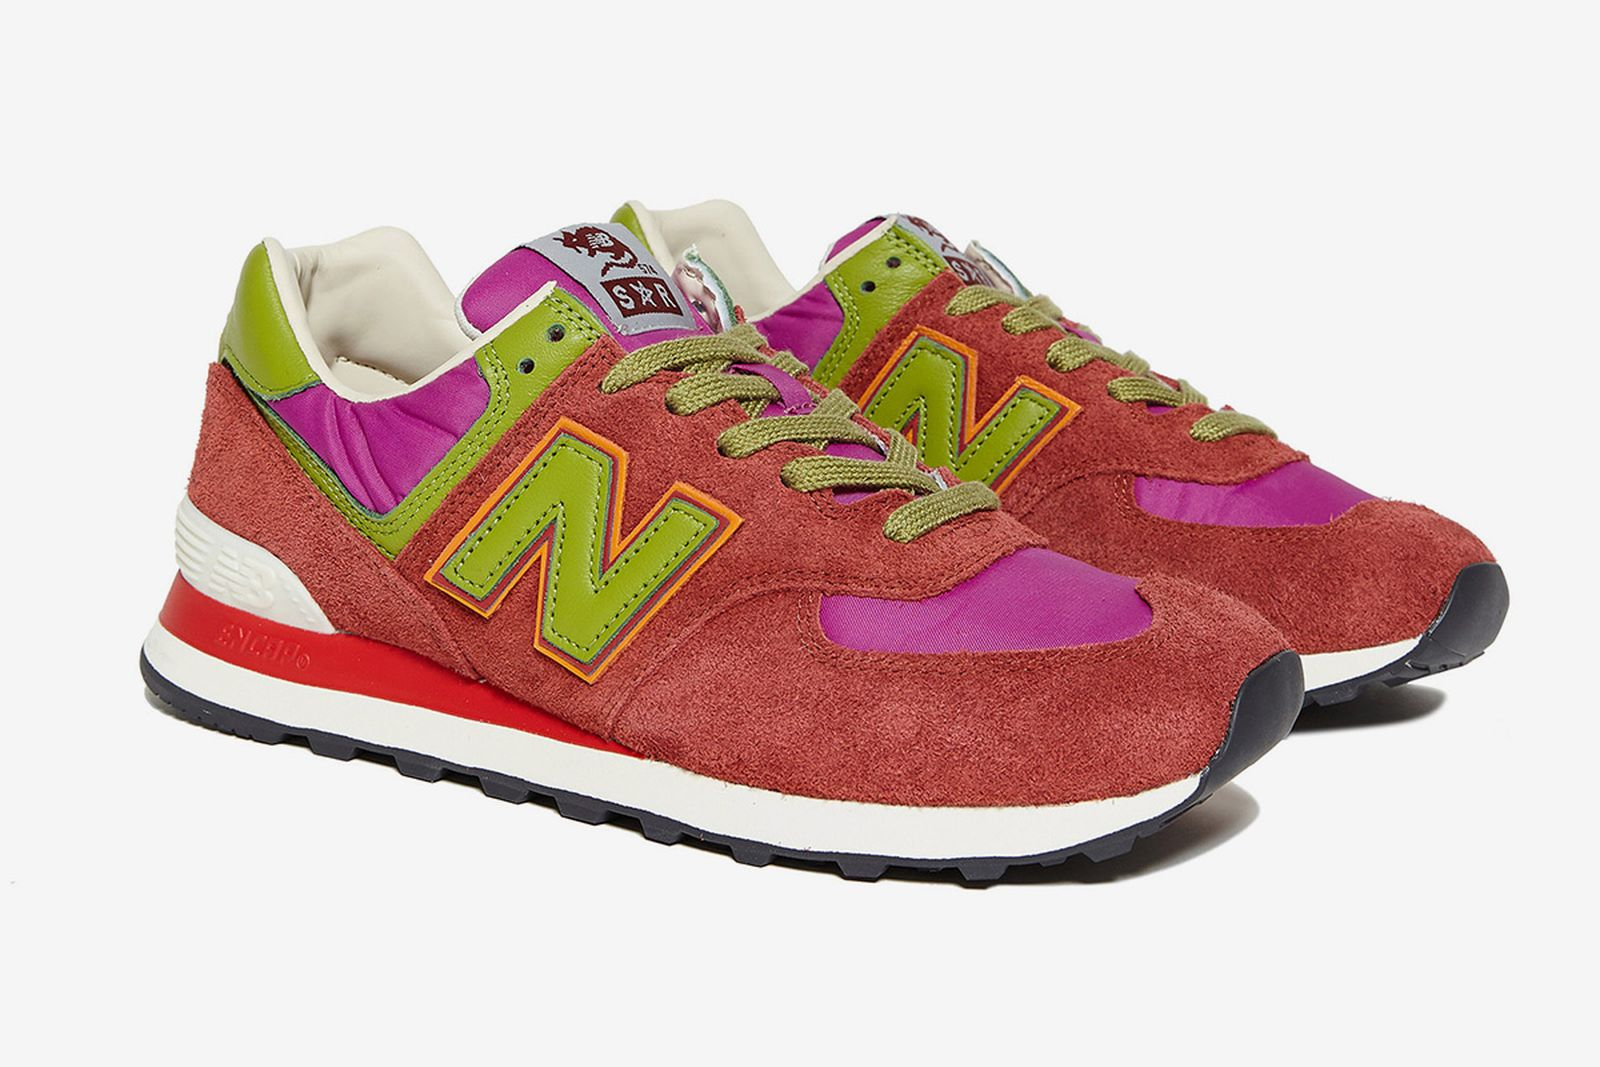 stray-rats-new-balance-574-release-date-price-02